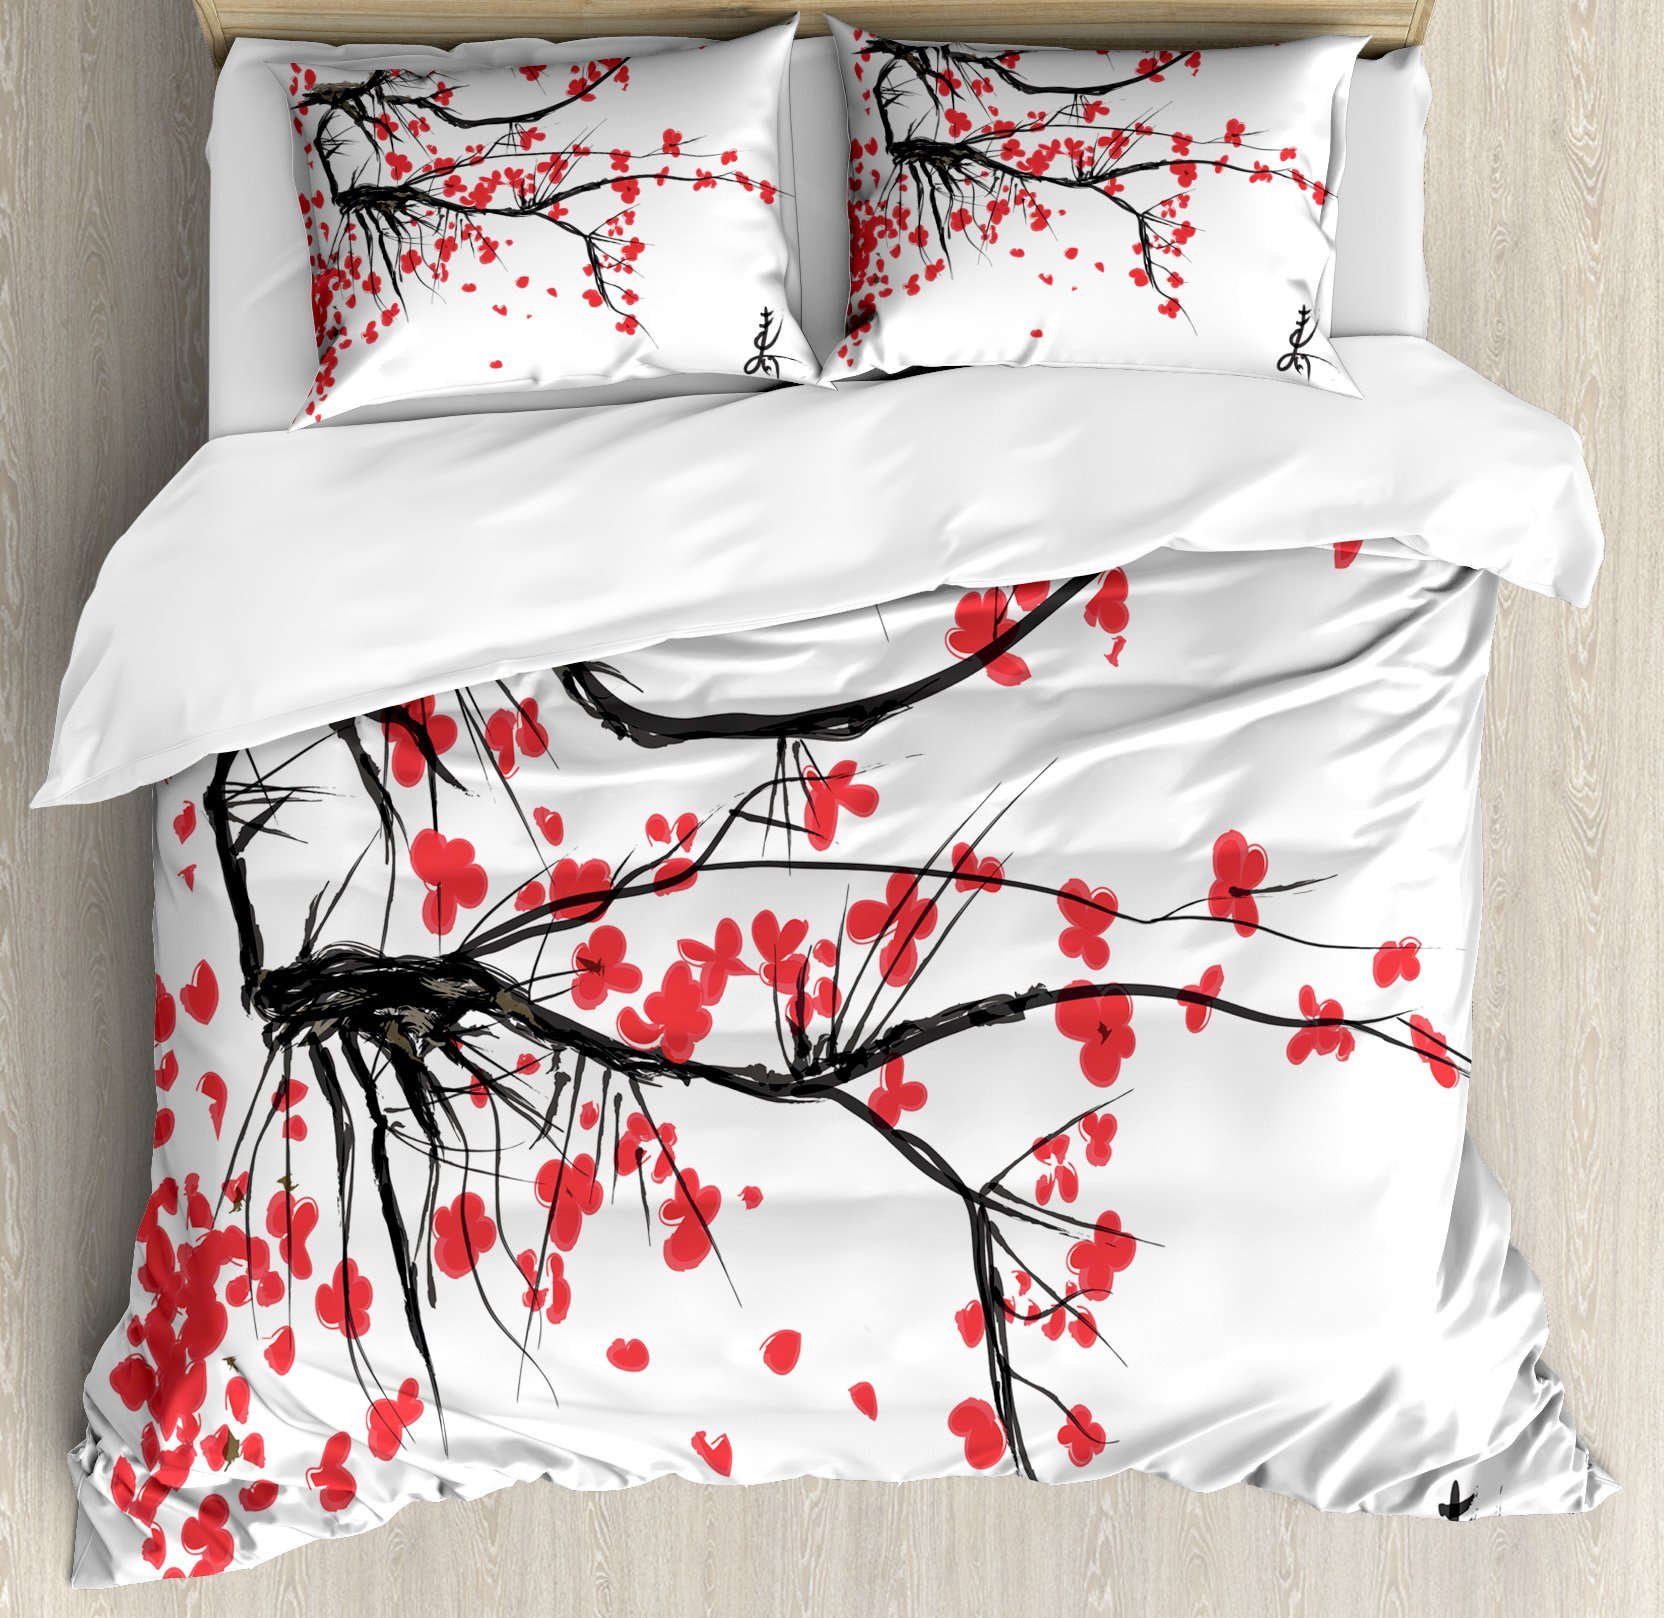 Ambesonne Nature Duvet Cover Set King Size, Sakura Blossom Japanese Cherry Tree Garden Summertime Vintage Cultural Print, Decorative 3 Piece Bedding Set with 2 Pillow Shams, Grey and Vermilion